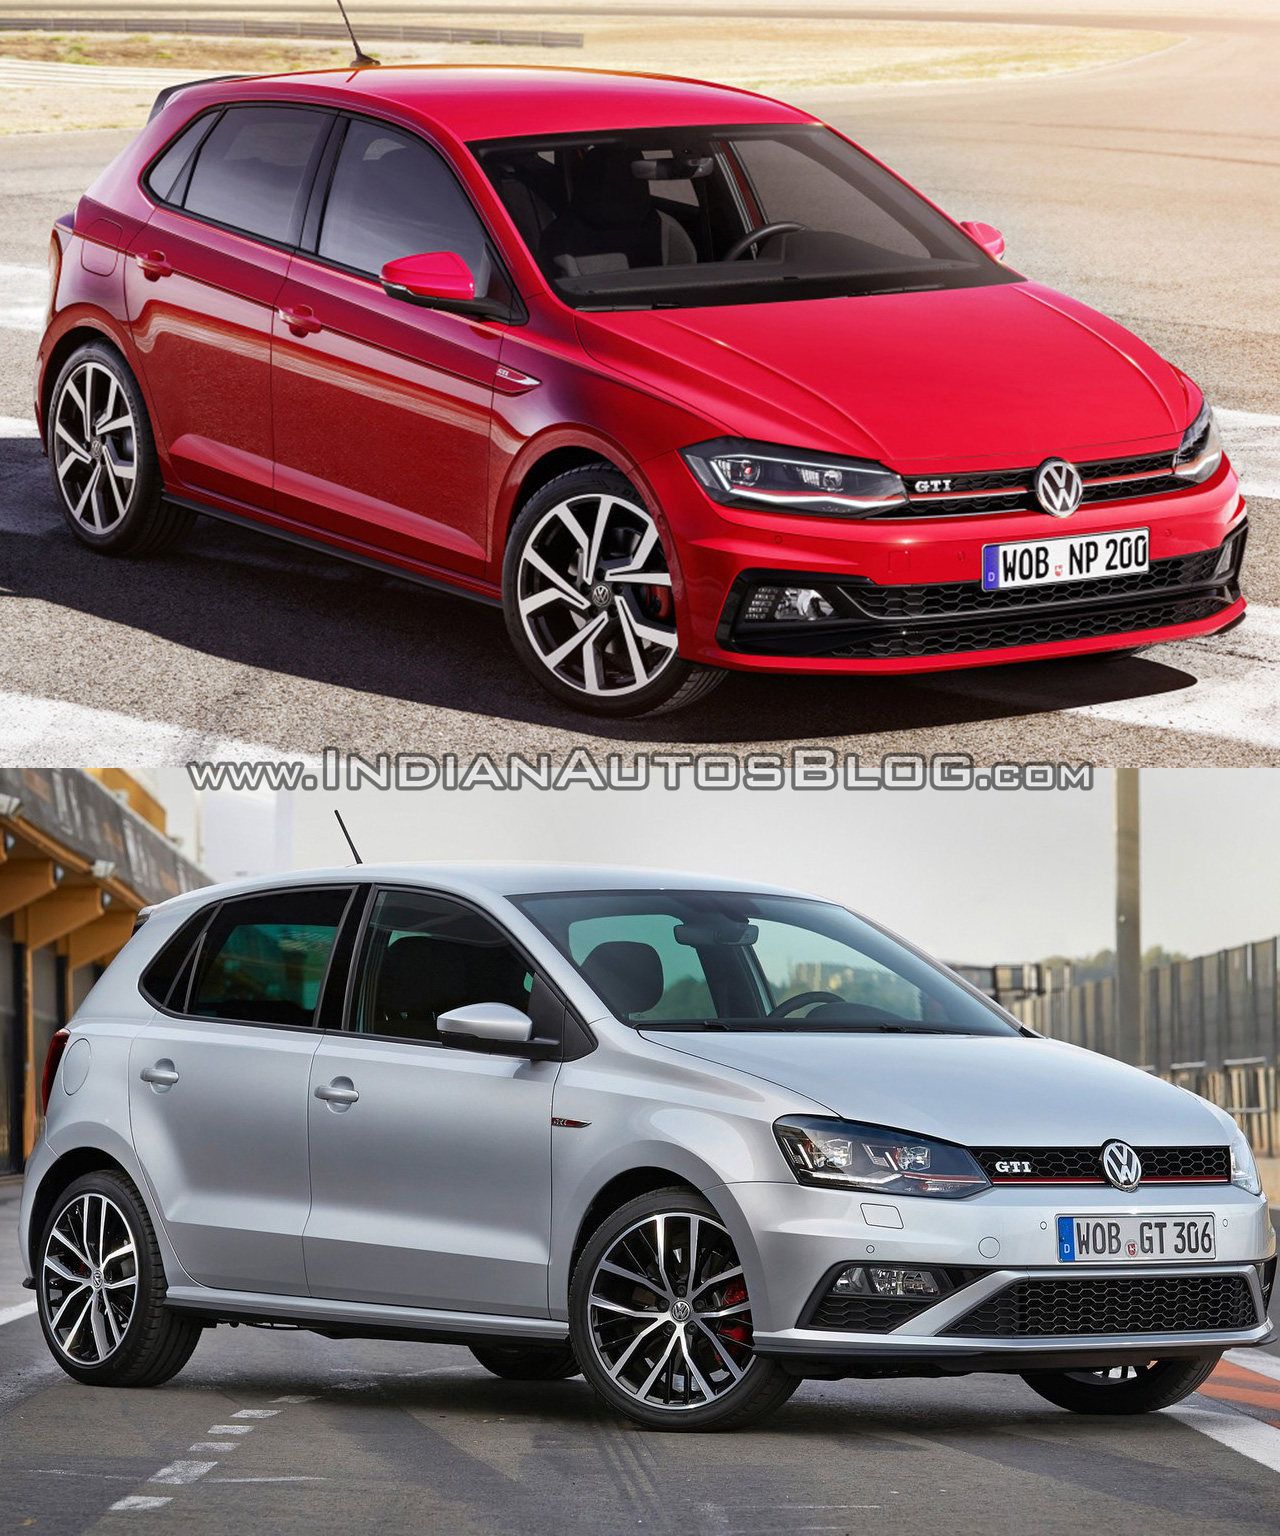 2017 Vw Polo Gti Vs Old Vw Polo Gti